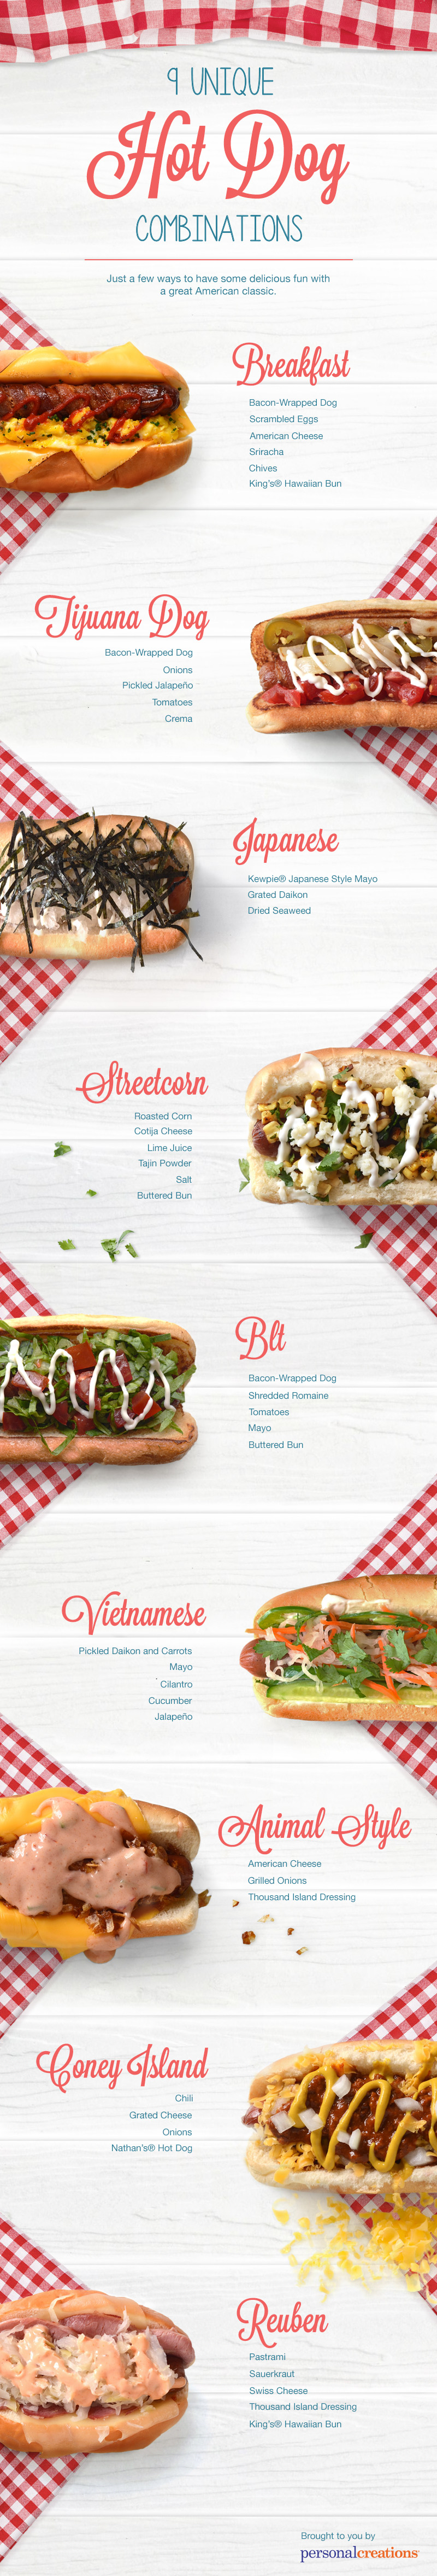 Unique Hot Dog Combinations